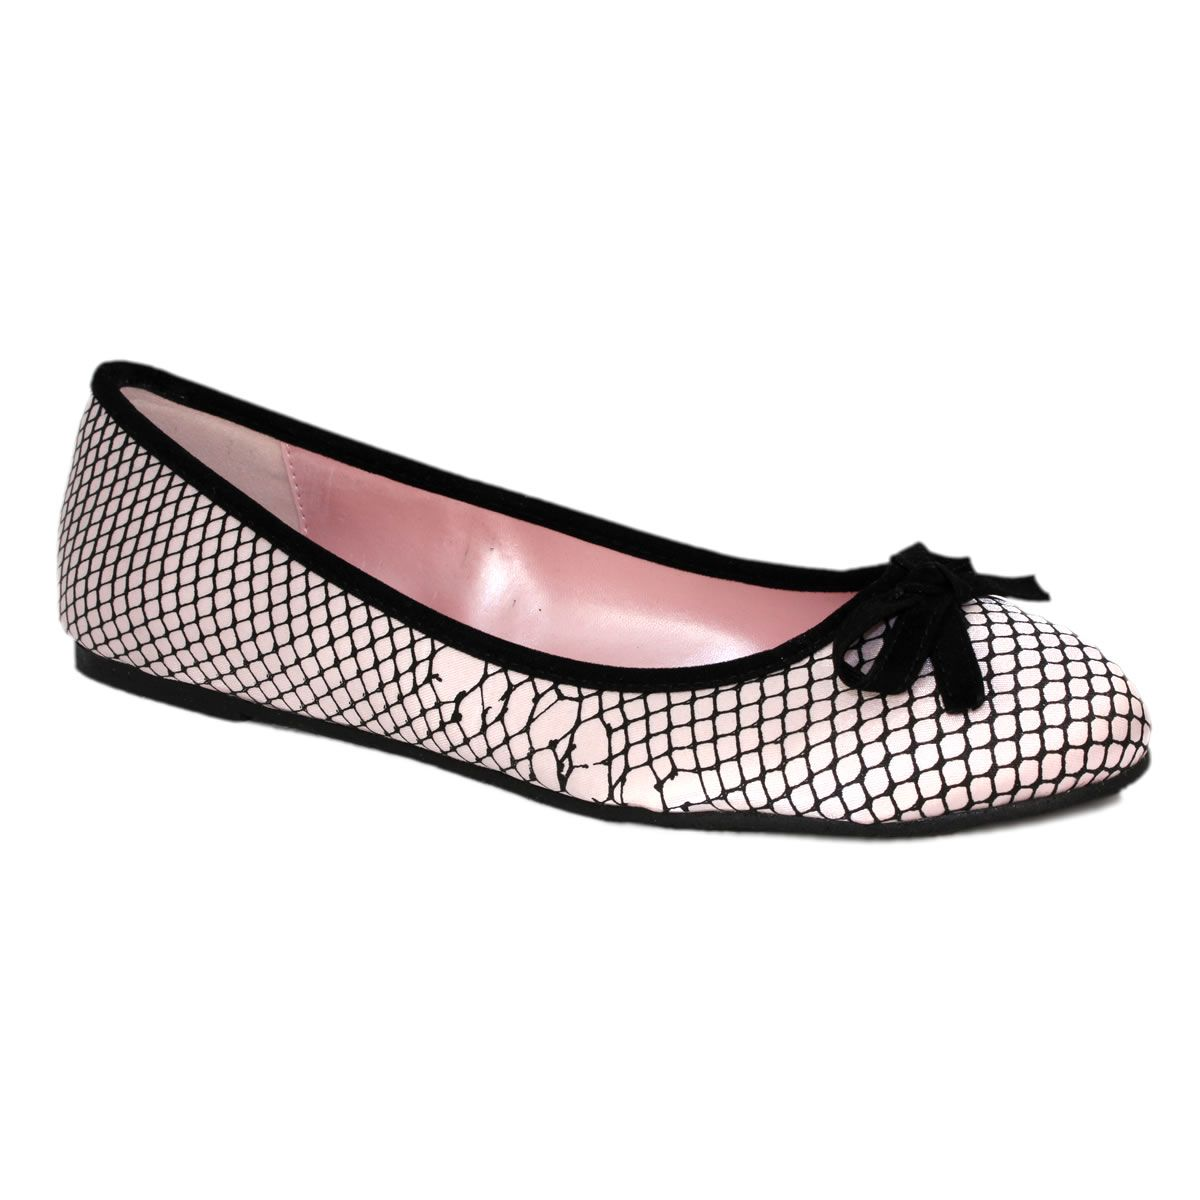 Iron Fist I Caught Kewpie Ladies Flat Pump  £29.99 with FREE UK next working day delivery!